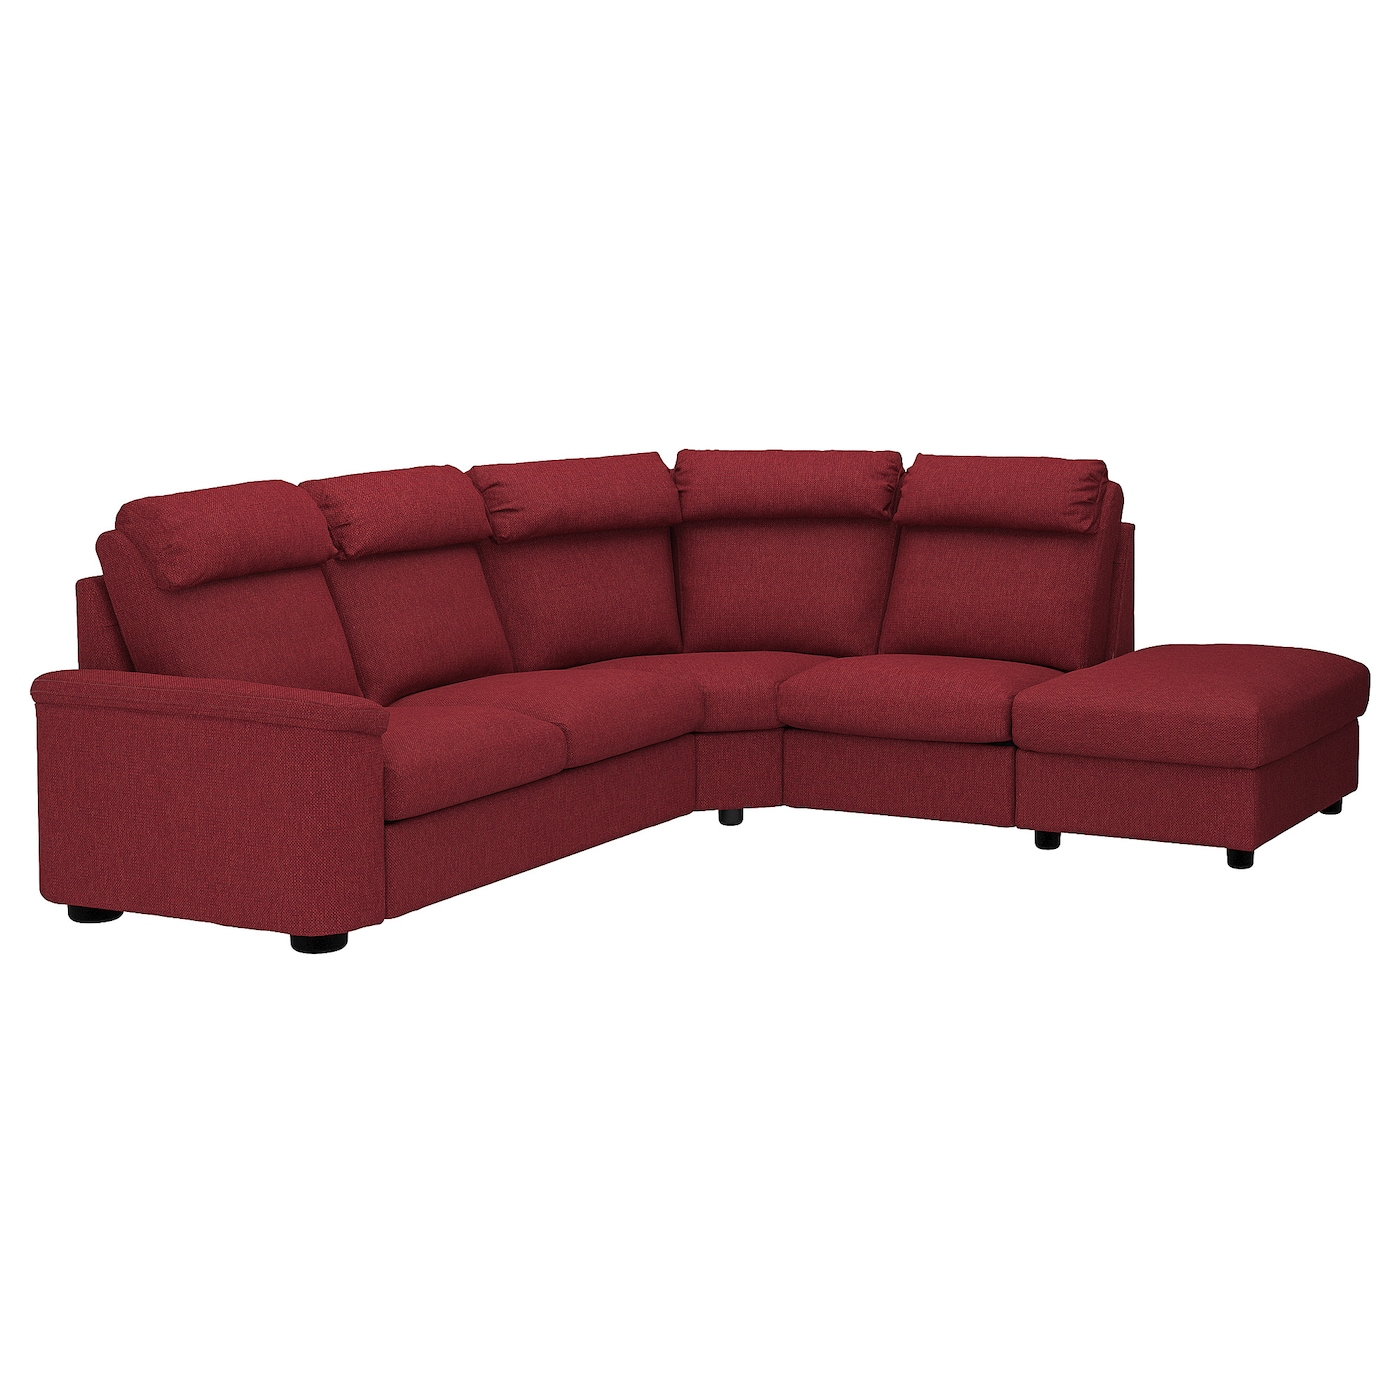 IKEA LIDHULT corner sofa, 5-seat 10 year guarantee. Read about the terms in the guarantee brochure.